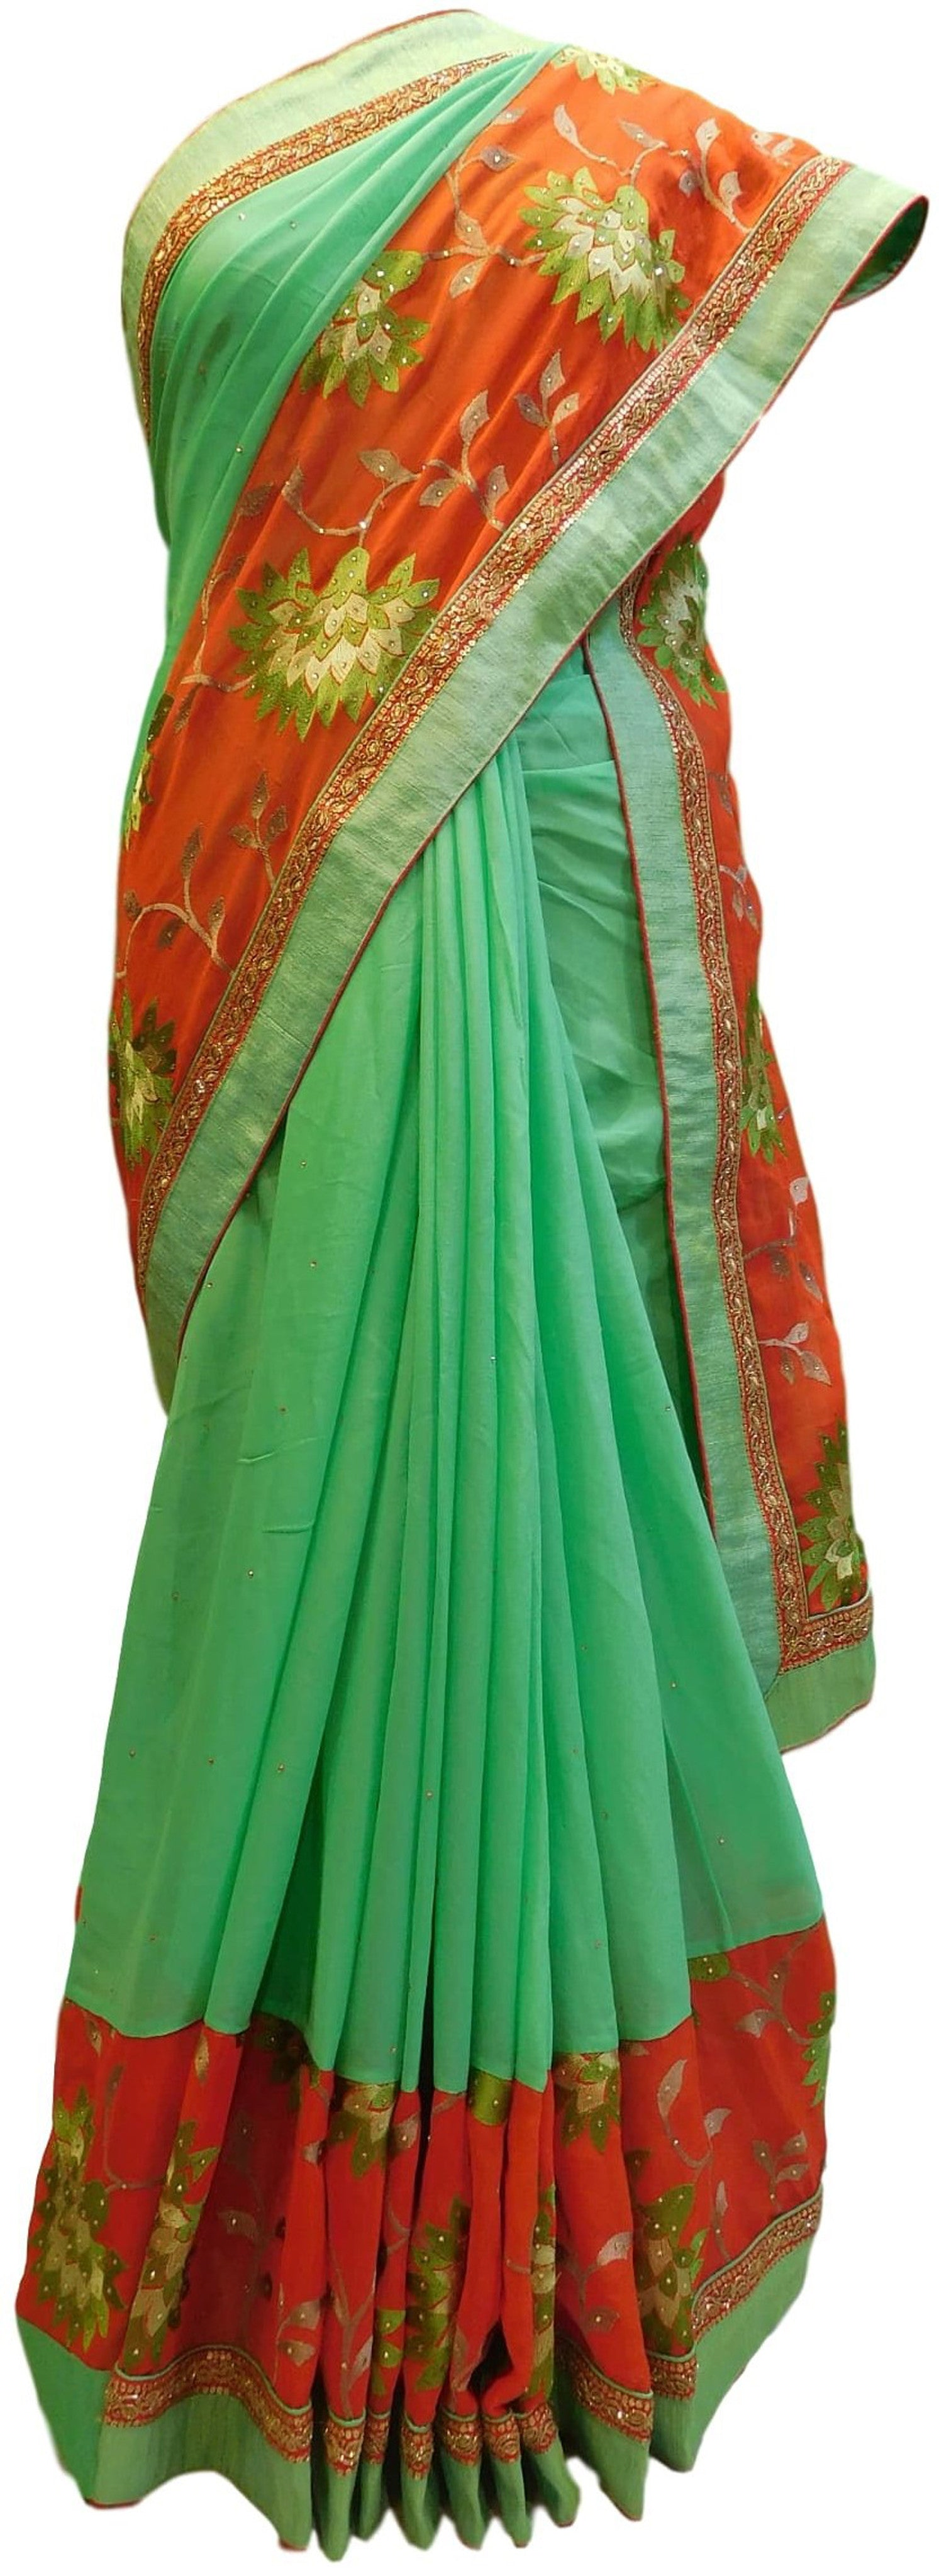 Green & Red Designer Wedding Partywear Ethnic Bridal Dupian Silk Hand Embroidery Stone Zari Bullion Sequence Thread Work Kolkata Women Blouse Saree Sari SAC352